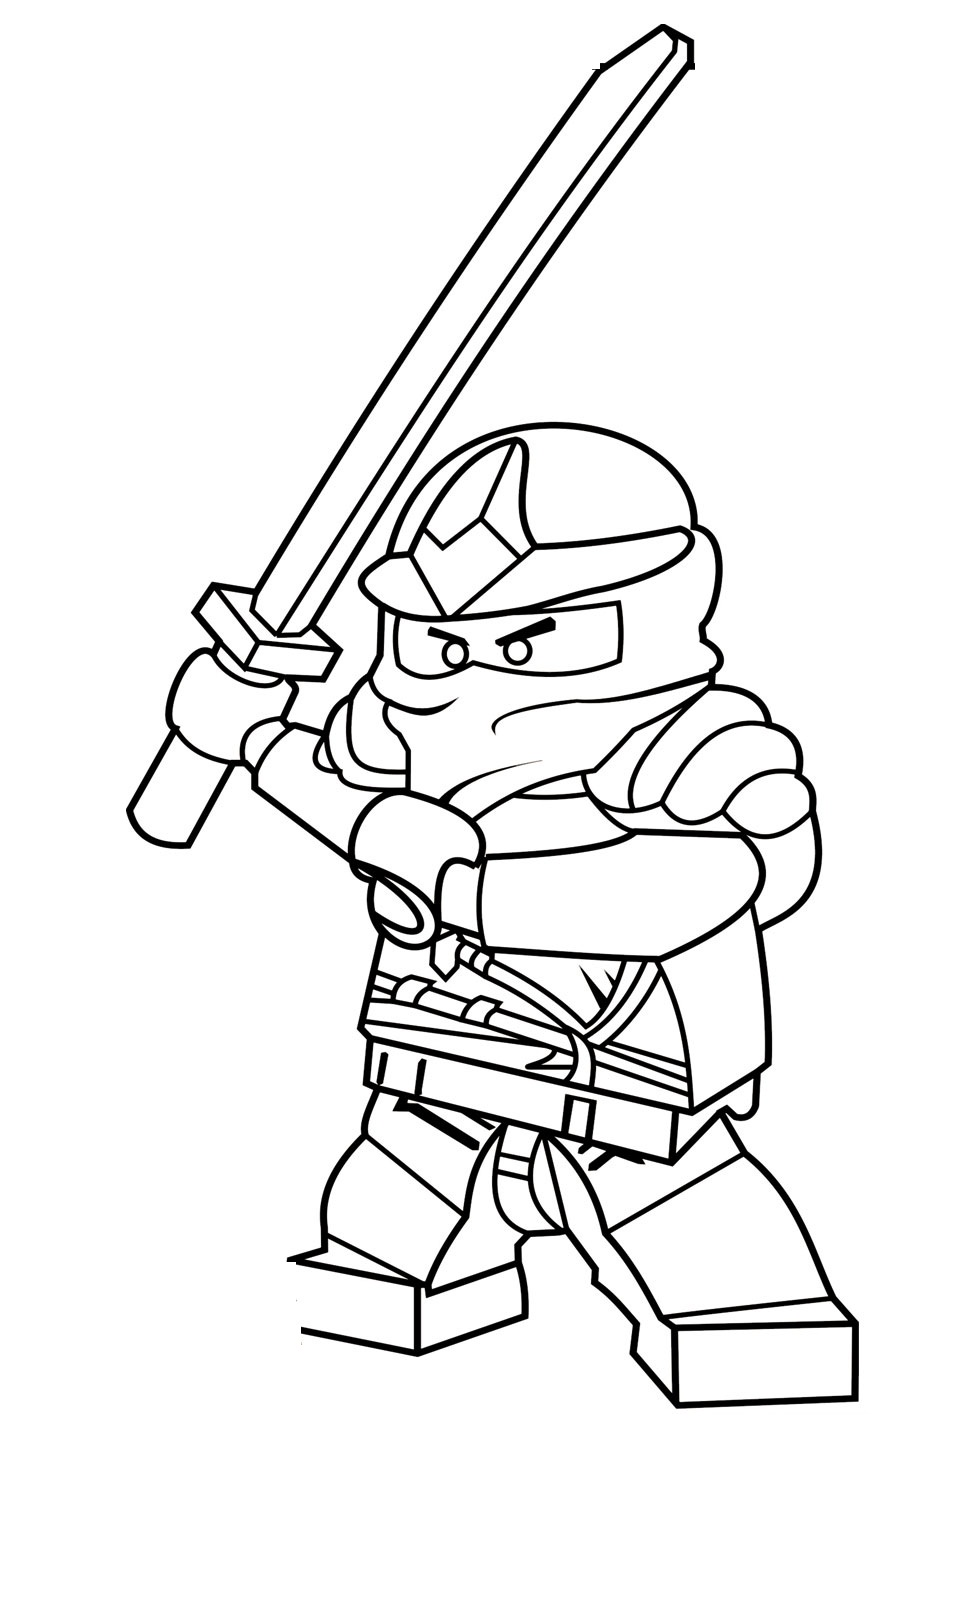 Lego Ninjago Ausmalbilder Cole : Free Printable Ninjago Coloring Pages For Kids